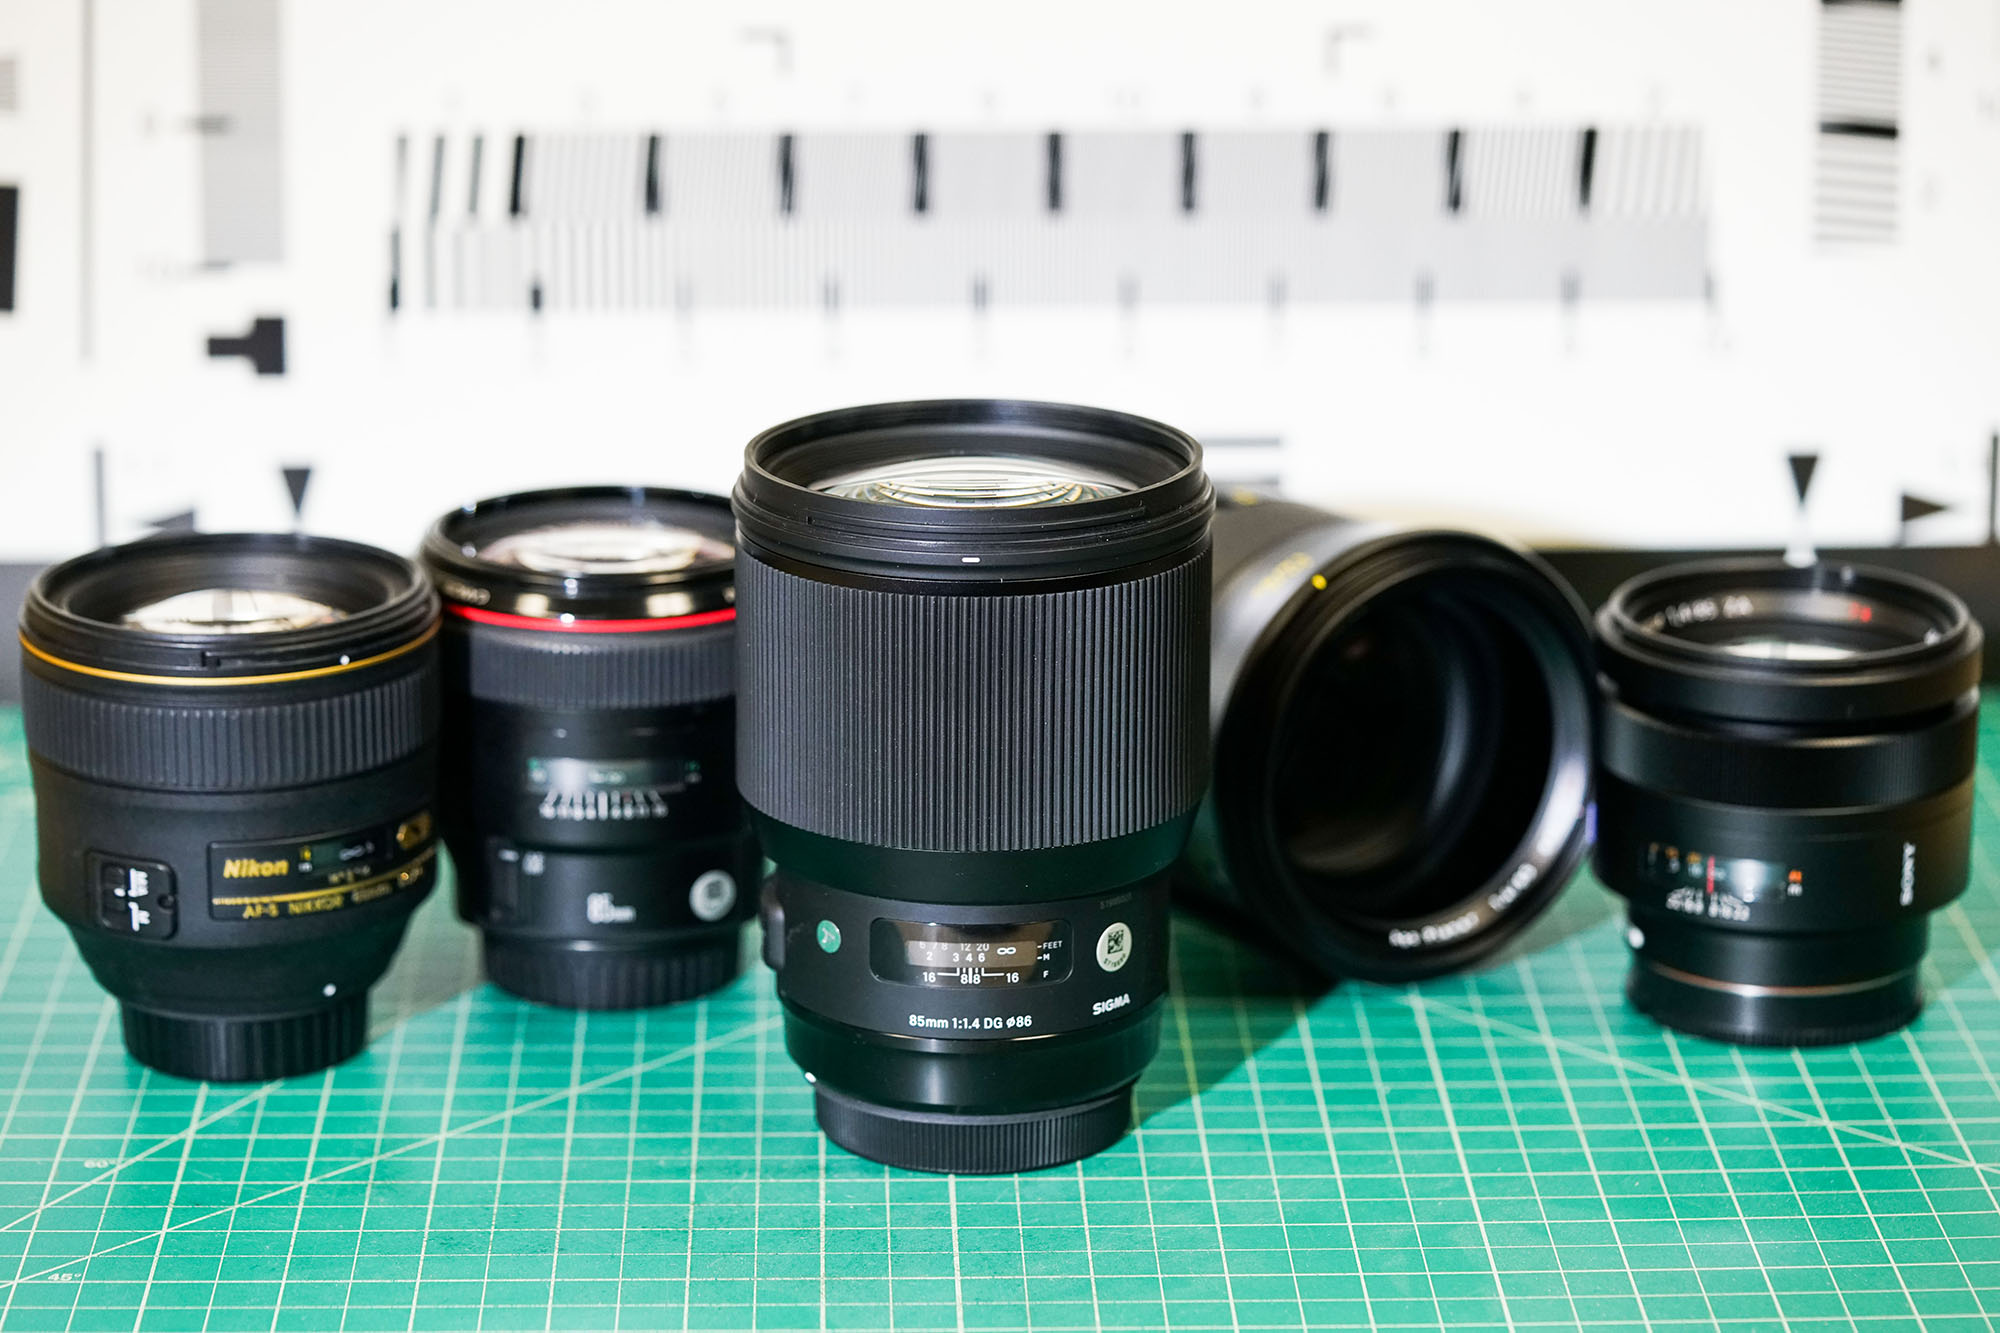 Lens Rentals Blog Sigma For Canon 50mm F 14 Dg Hsm Art Didnt Come From Sony Or Nikon But Rather Finally Answered So Many Peoples Request And Released The 85mm Series